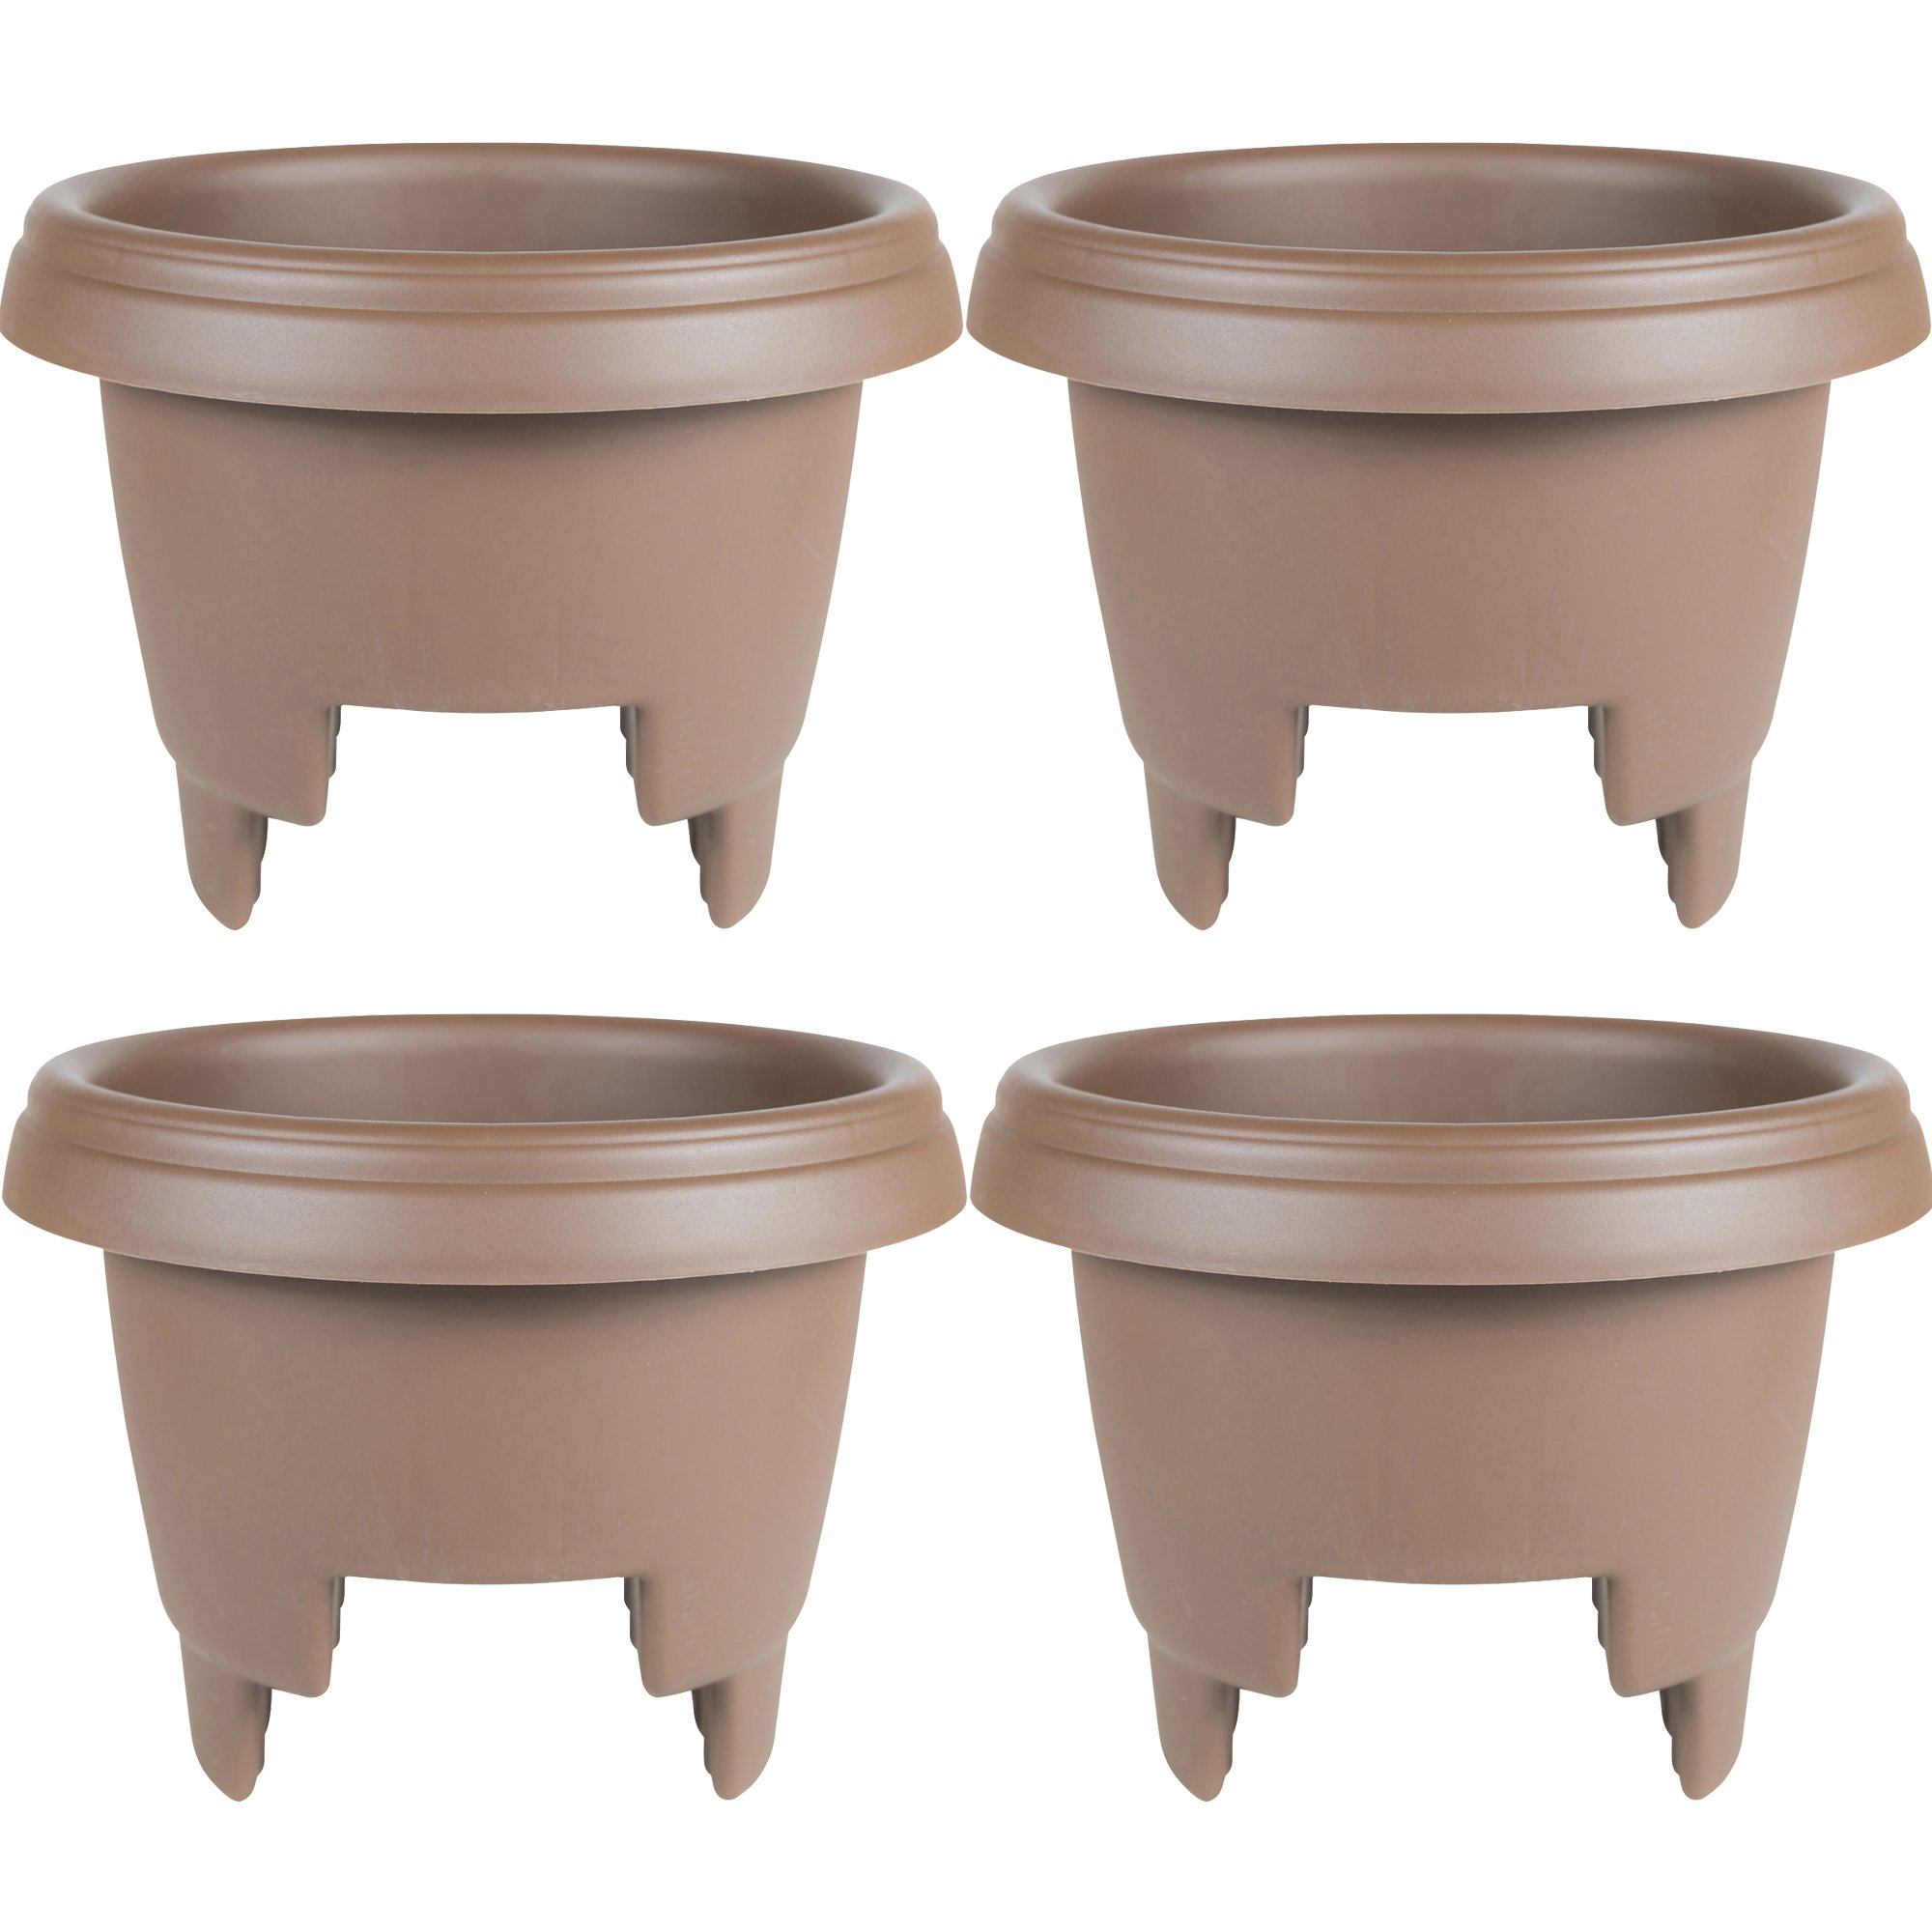 ..Bloem Deck Balcony Rail Planter, 12'', Chocolate, 4-Pack